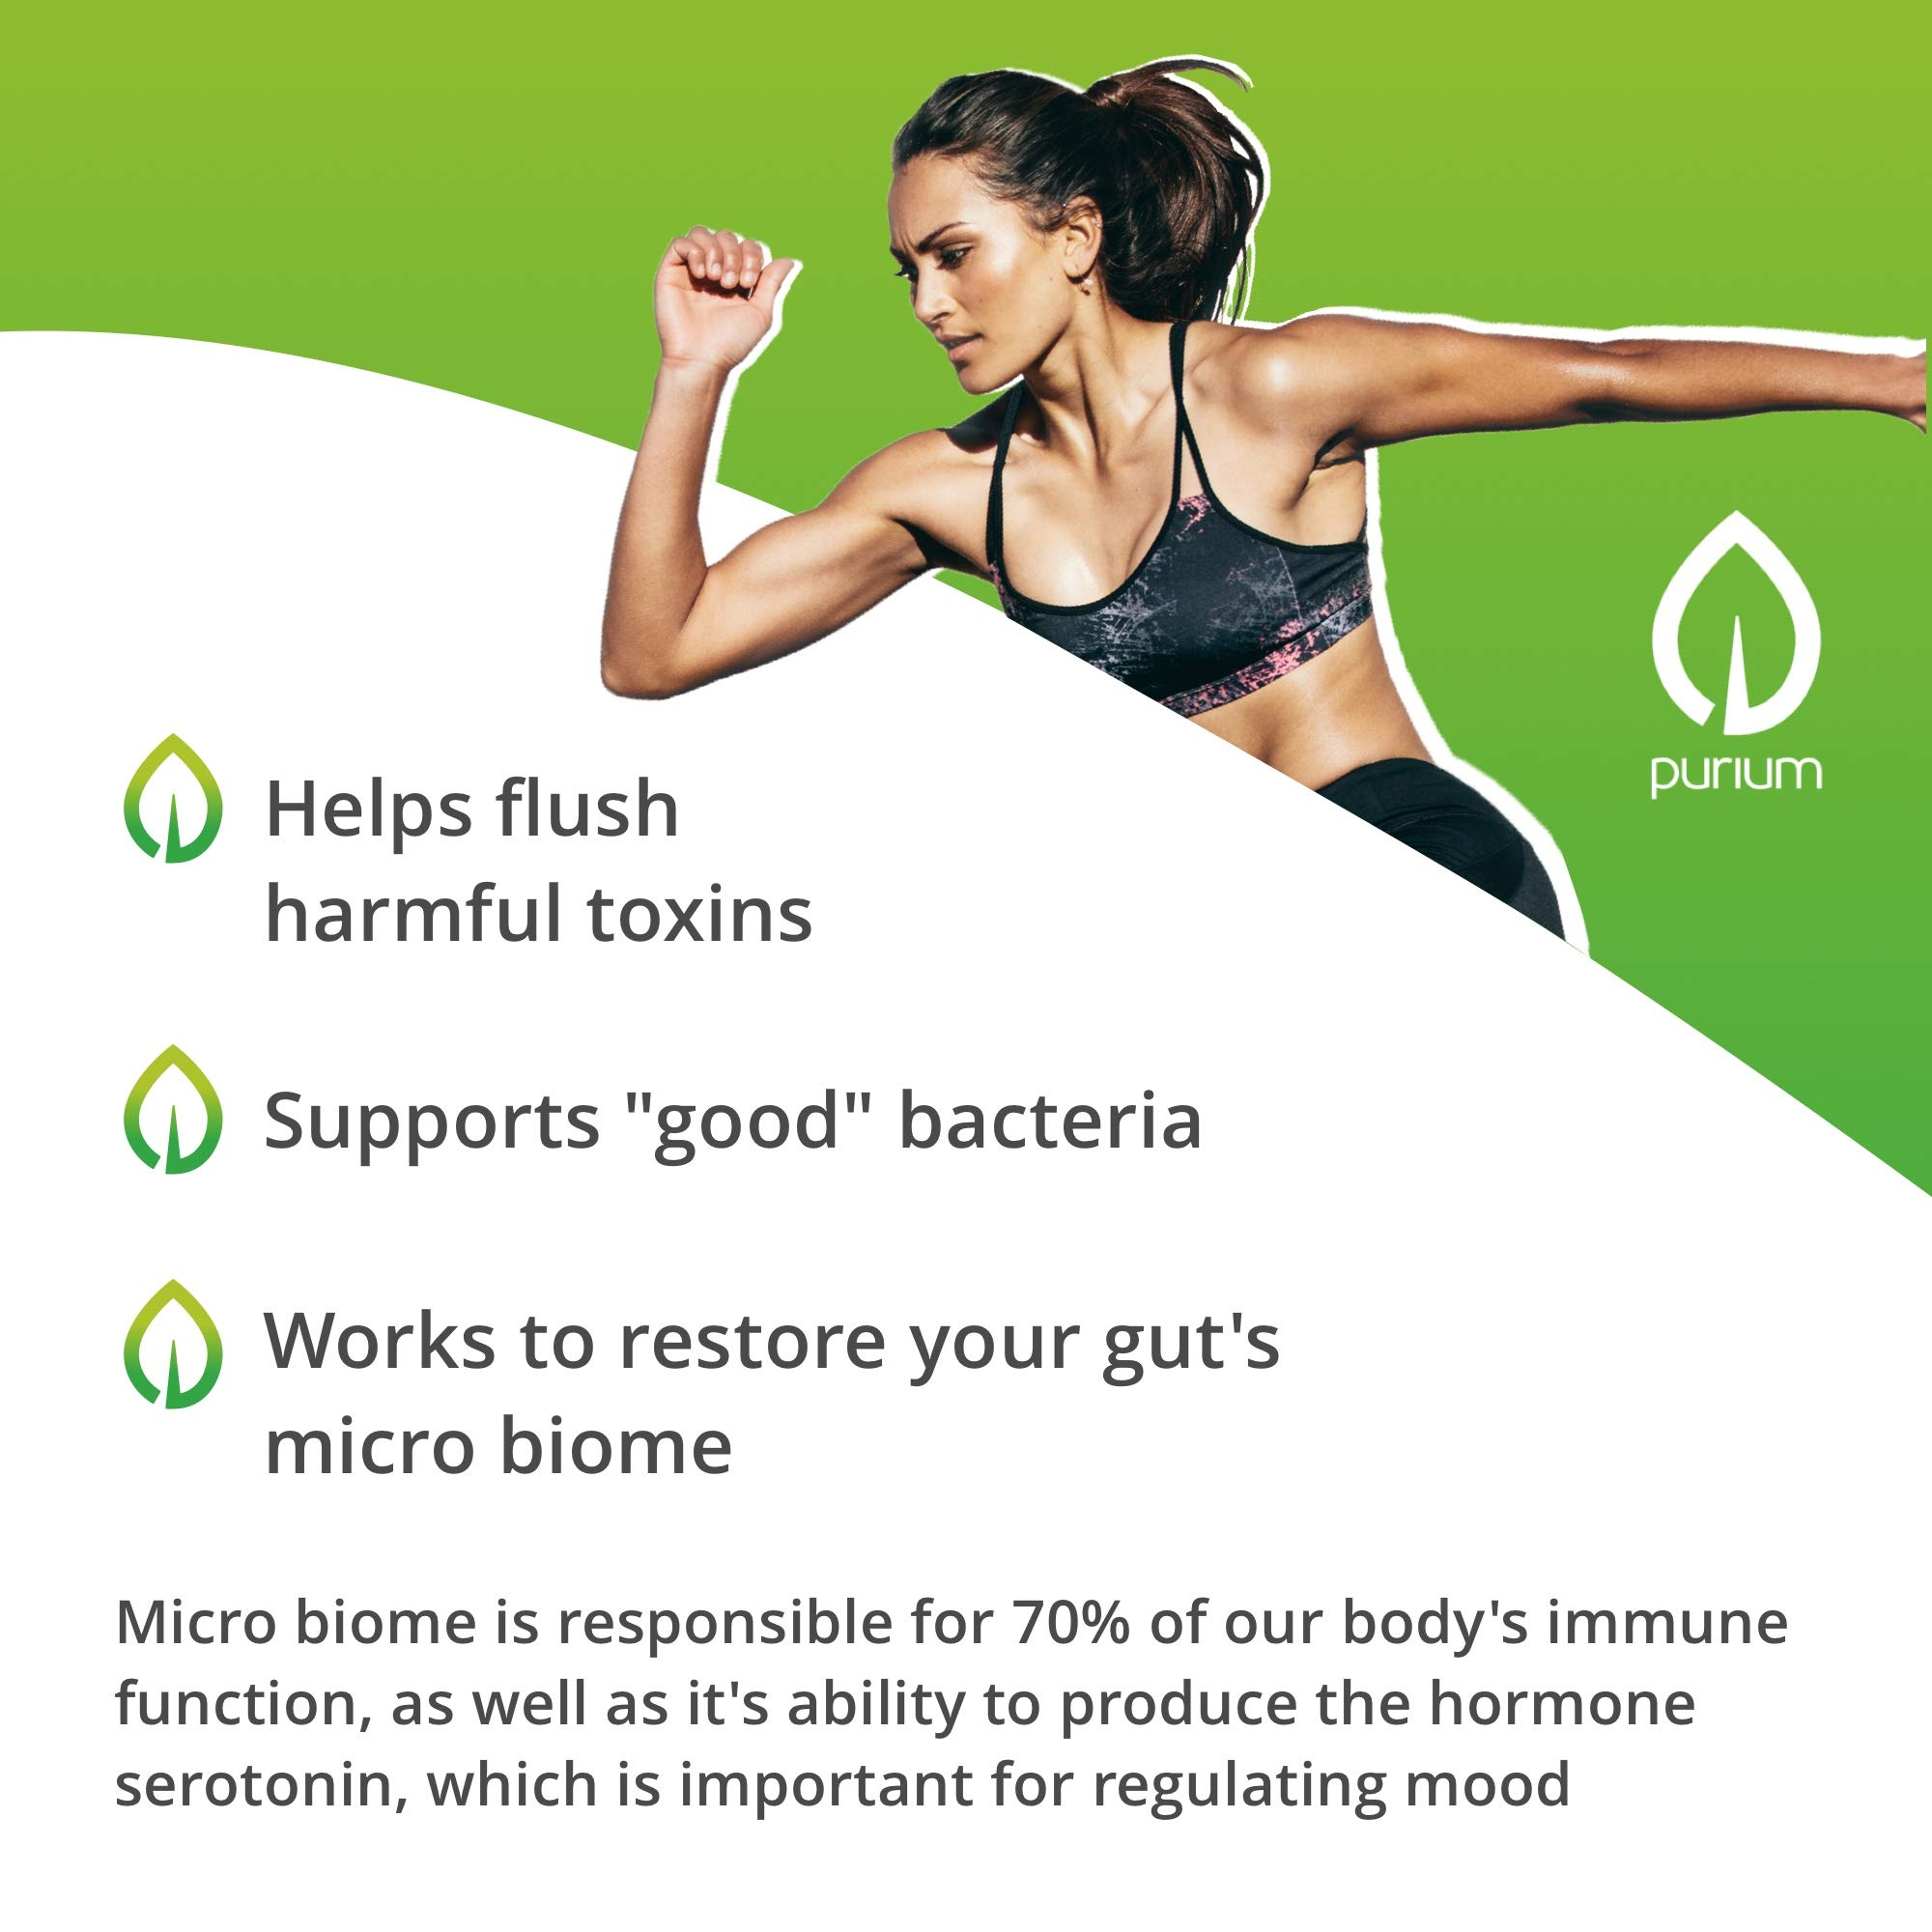 Purium Biome Medic - 60 Vegan Capsules - Gut Health Support Supplement, Removes GMO Toxins, Supports Good Bacteria, Repairs Microbiome - Vegetarian, Gluten Free - 60 Servings by Purium (Image #3)